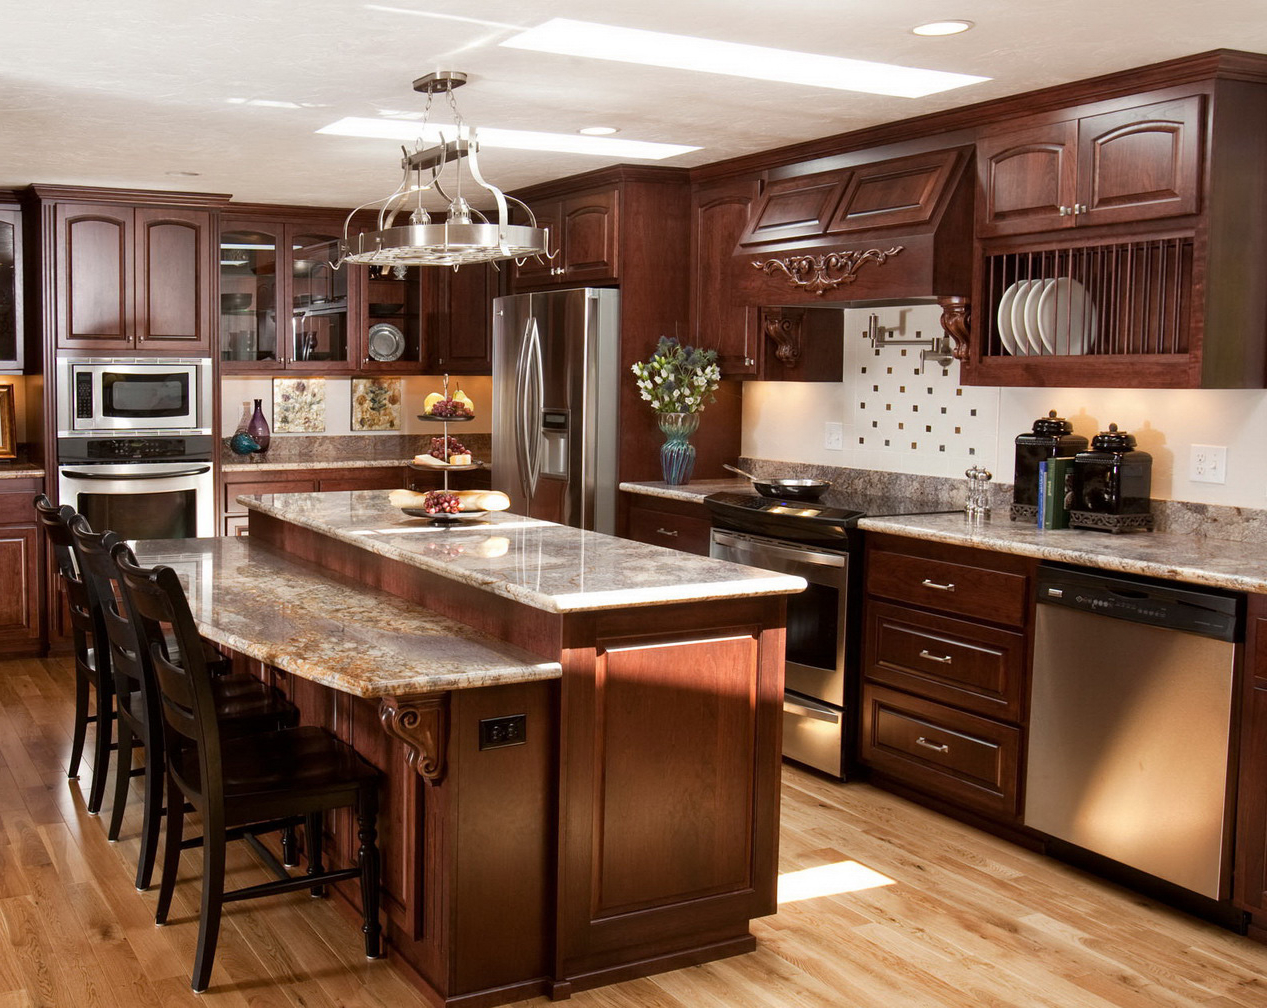 18 Decoration Ideas For Kitchen Of Your Dream - Live DIY Ideas on Kitchen Decoration Ideas  id=80208